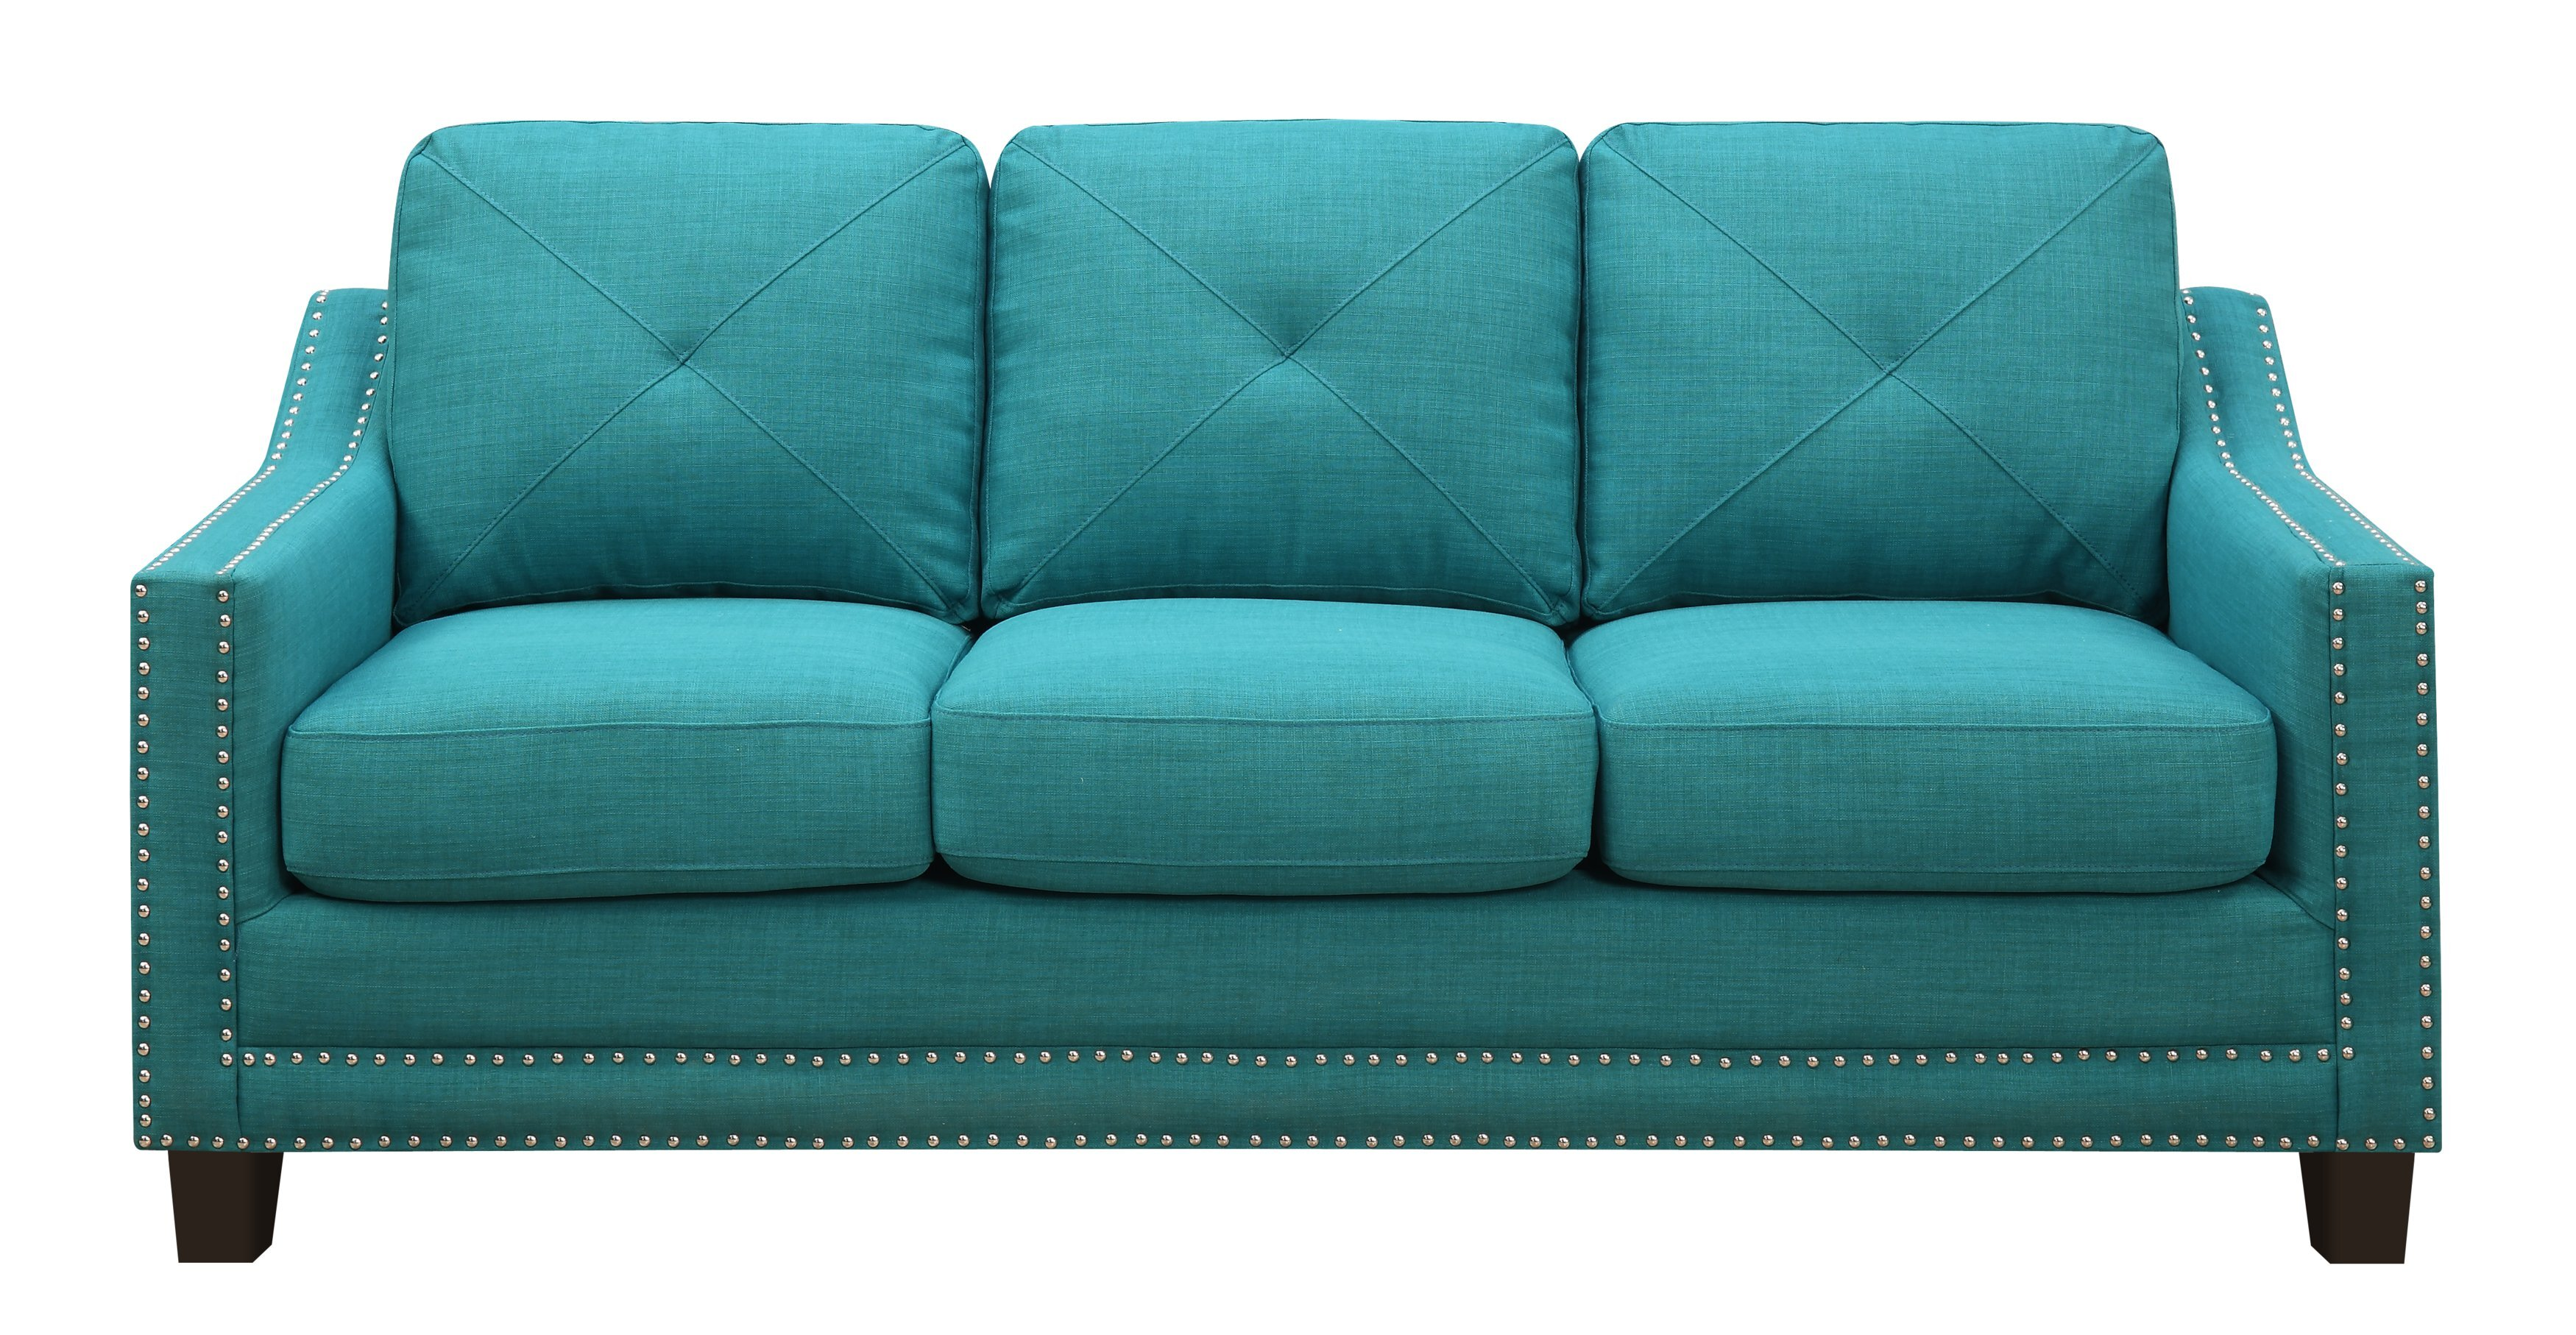 Taylor Guss Couch Hd טיילור הליהוק